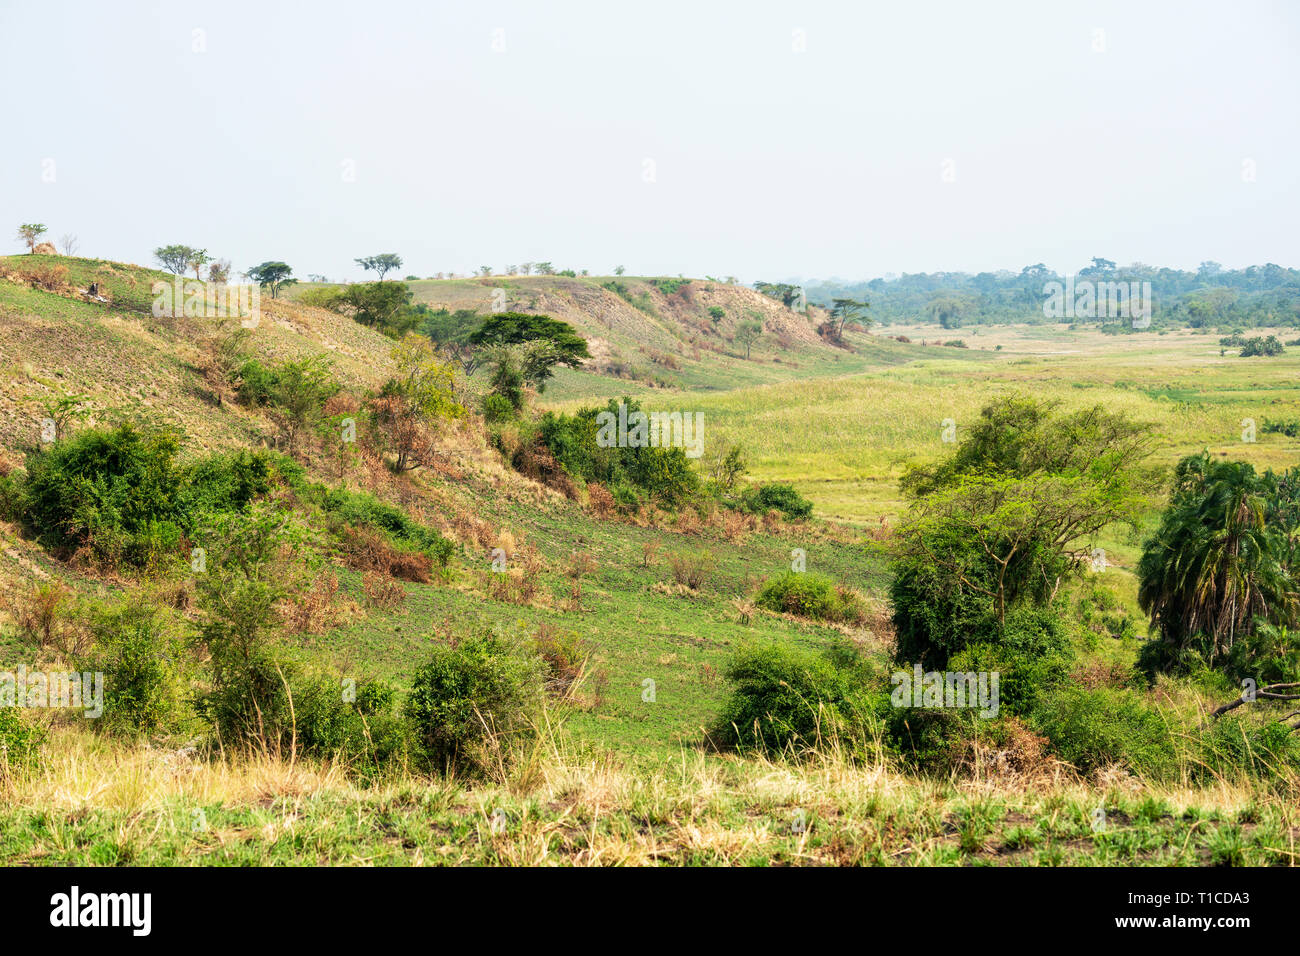 Lush green landscape of Ishasha Sector of Queen Elizabeth National Park in South West Uganda, East Africa - Stock Image